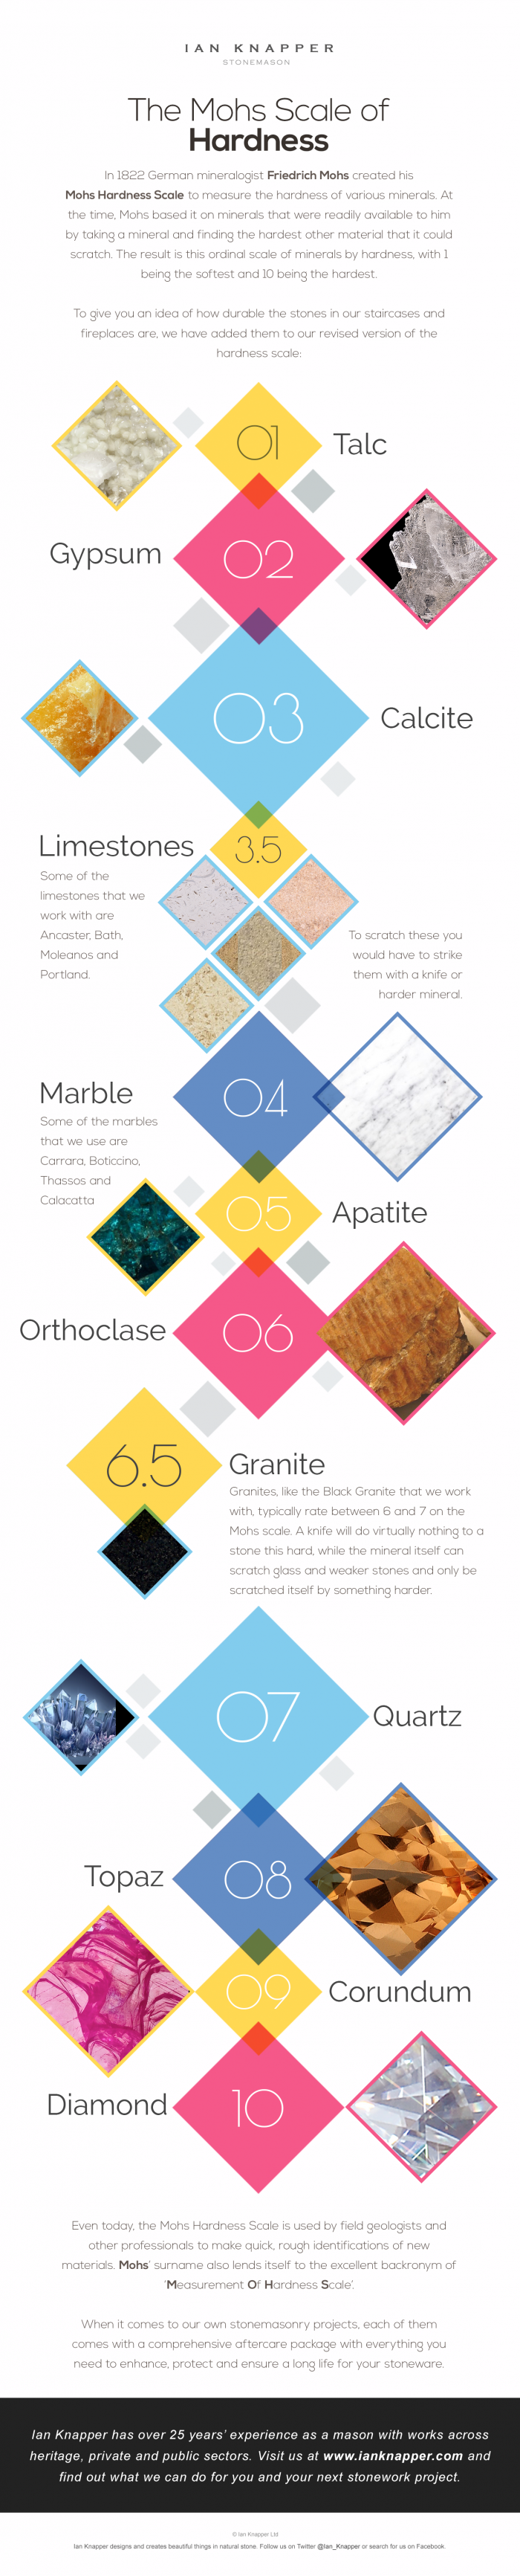 The Mohs Stone Hardness Scale